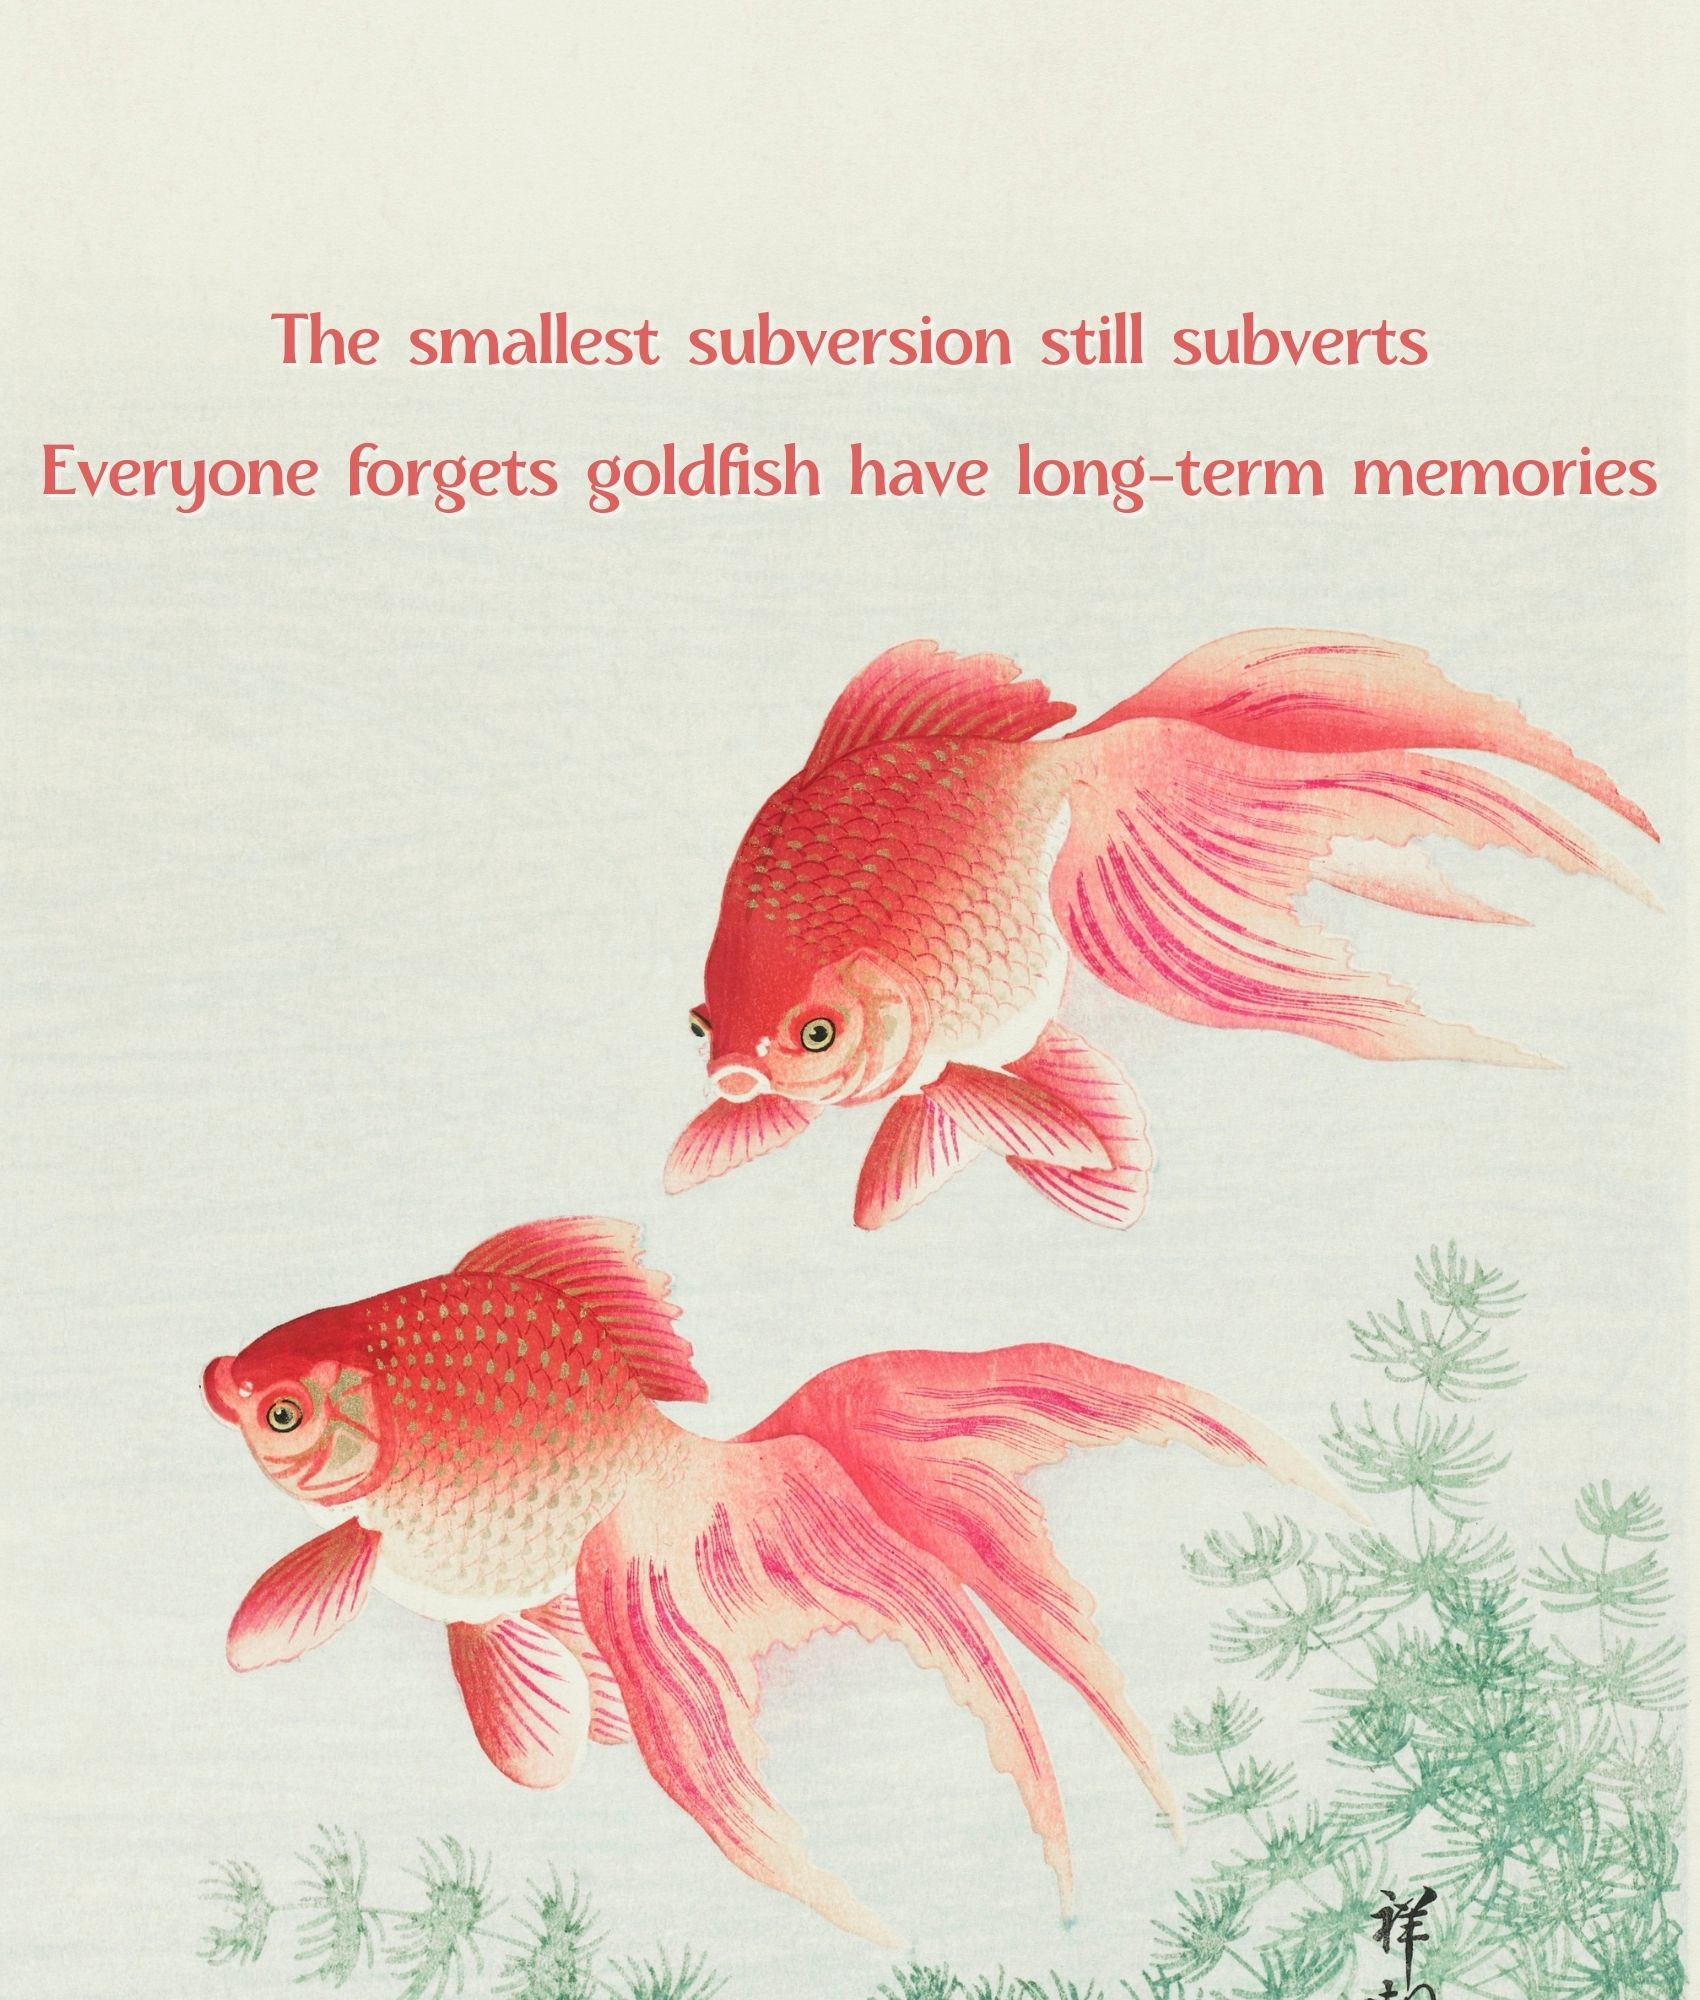 A beautifully colored illustration of two ruby and glowing orange goldfish, plus the aphorism below printed above them.